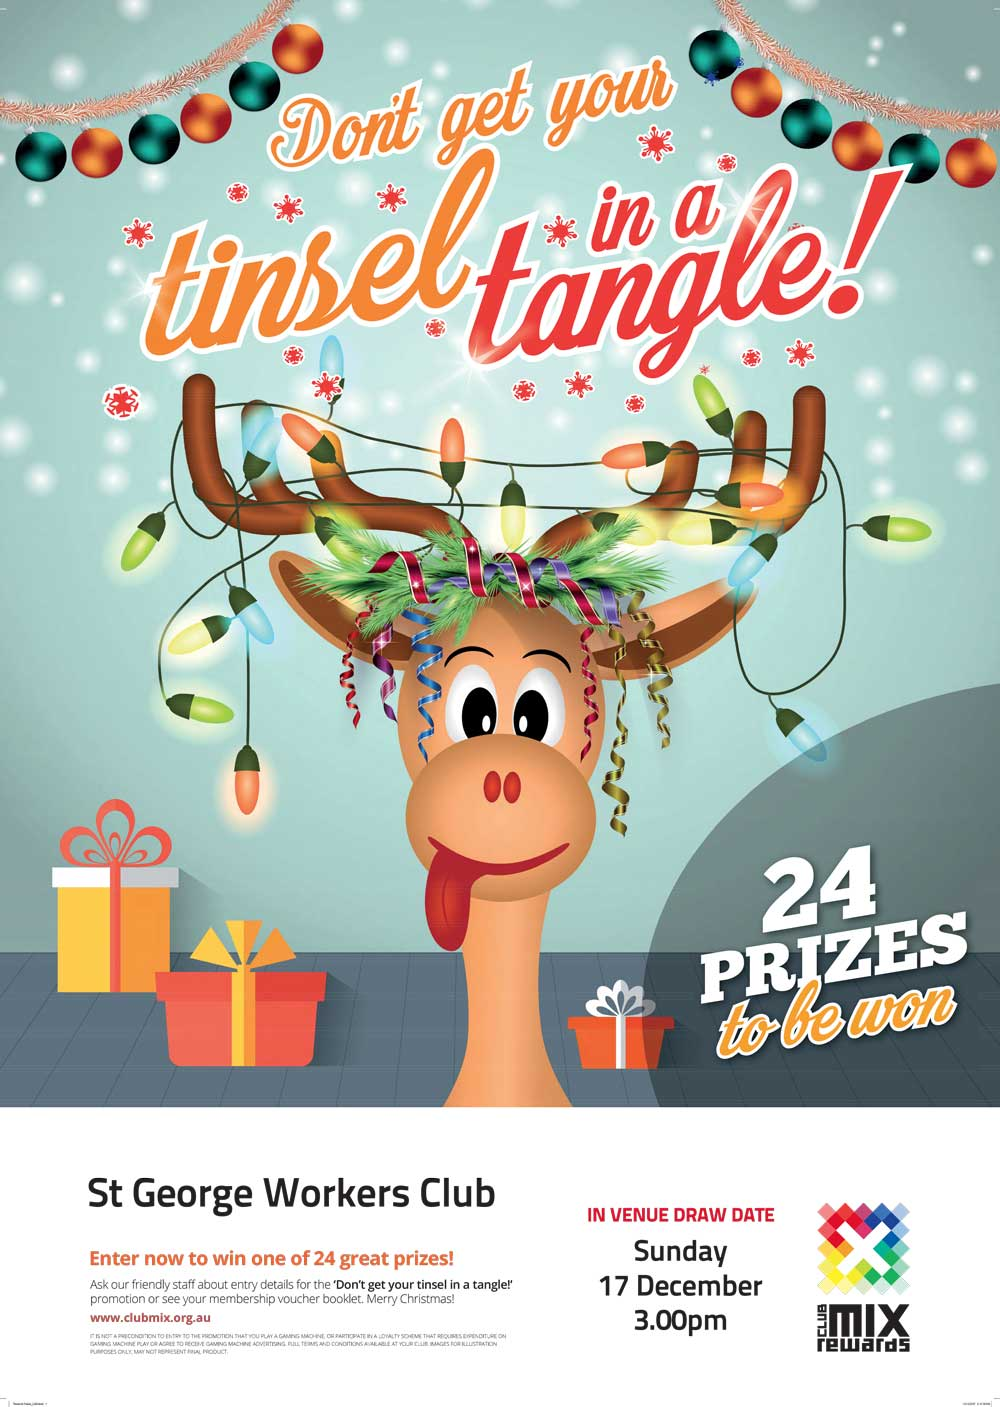 st george tinsel tangle promotion st george workers club. Black Bedroom Furniture Sets. Home Design Ideas